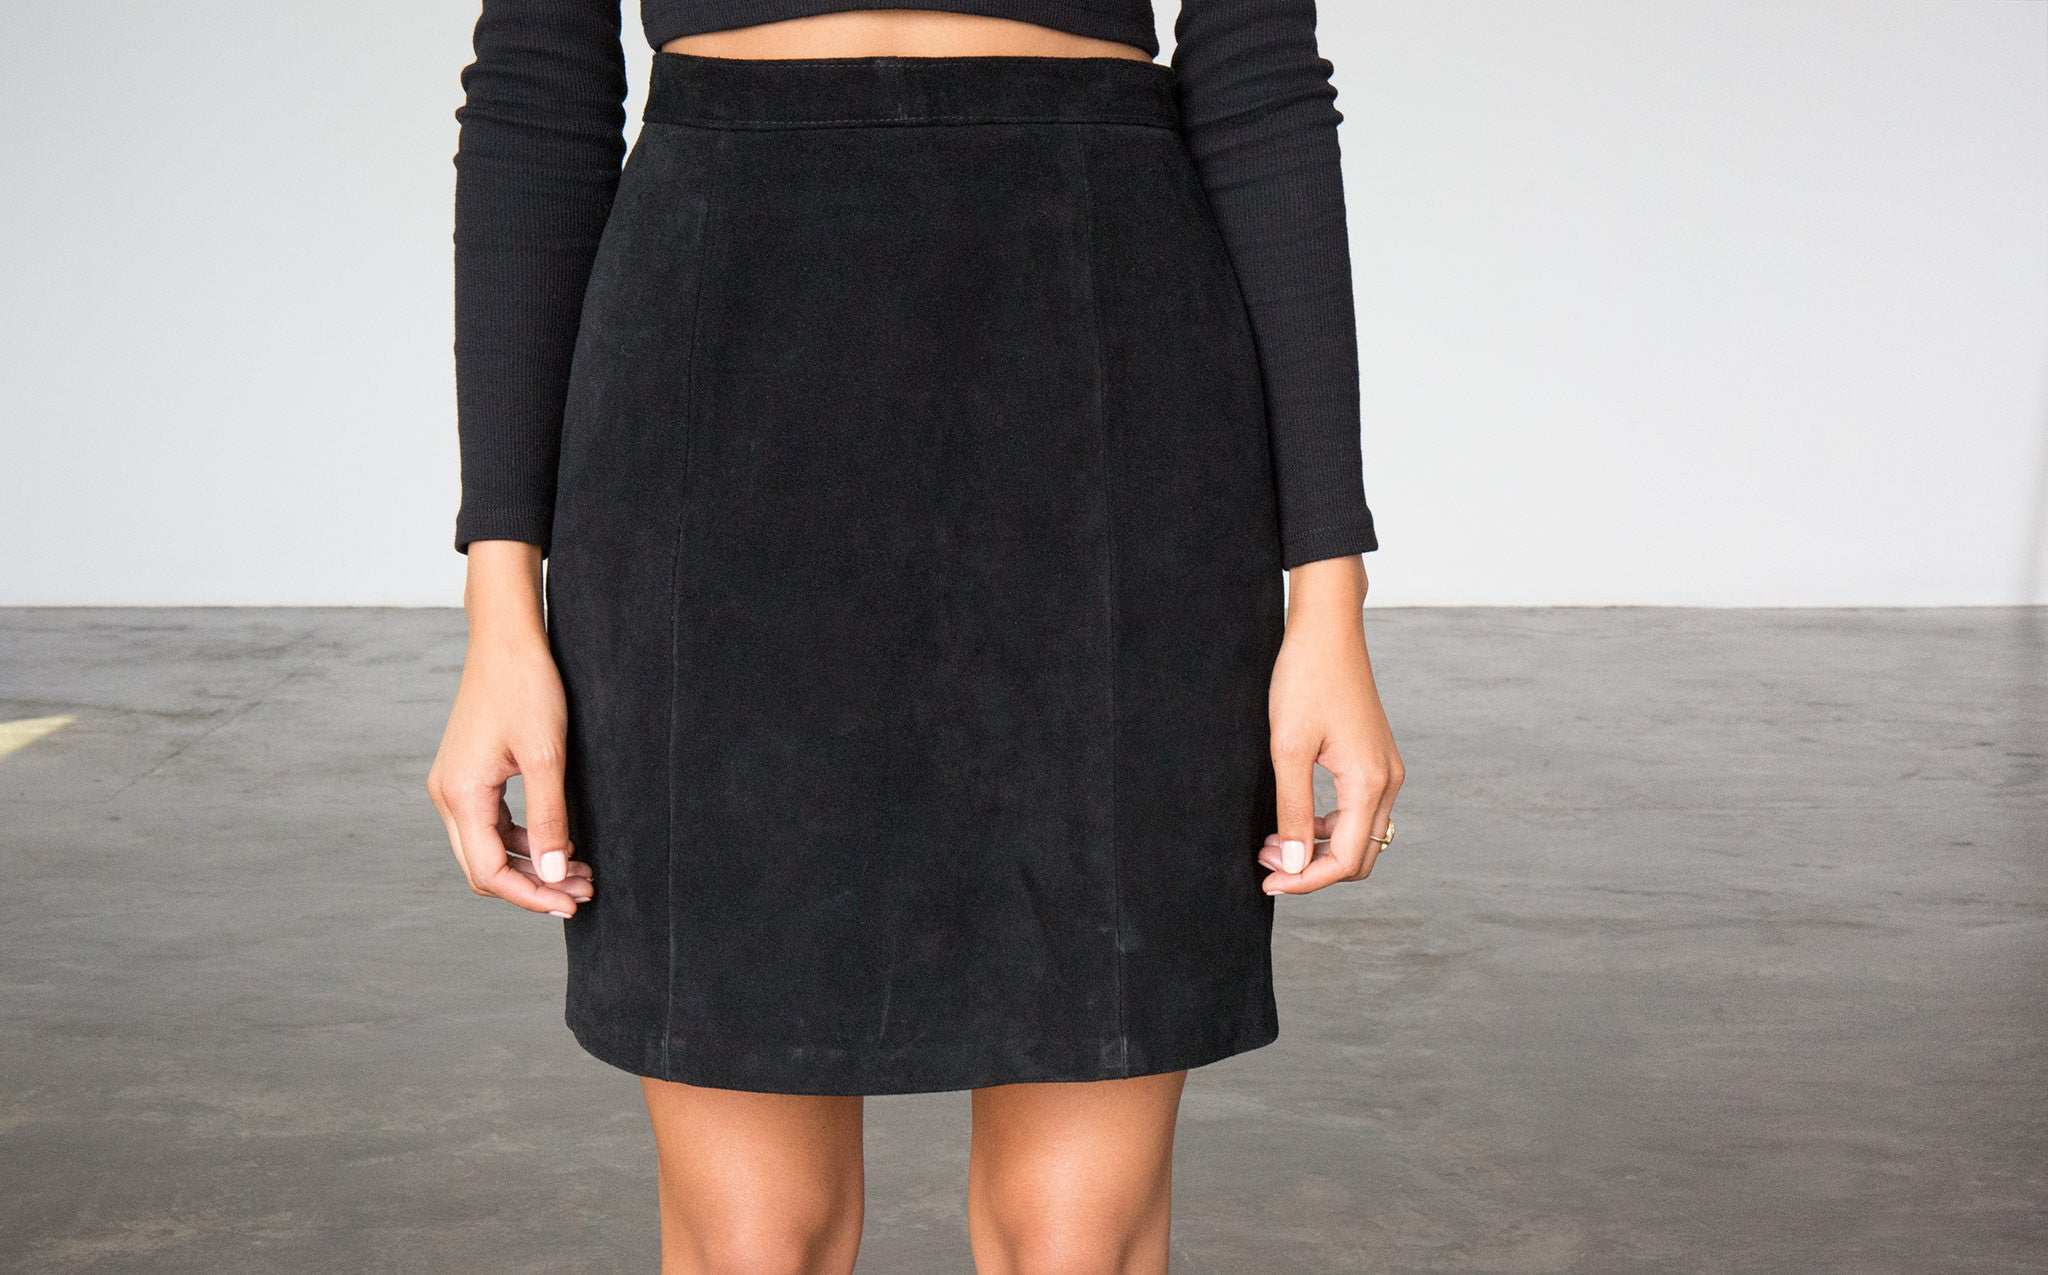 Suede Pencil Skirt kindred black